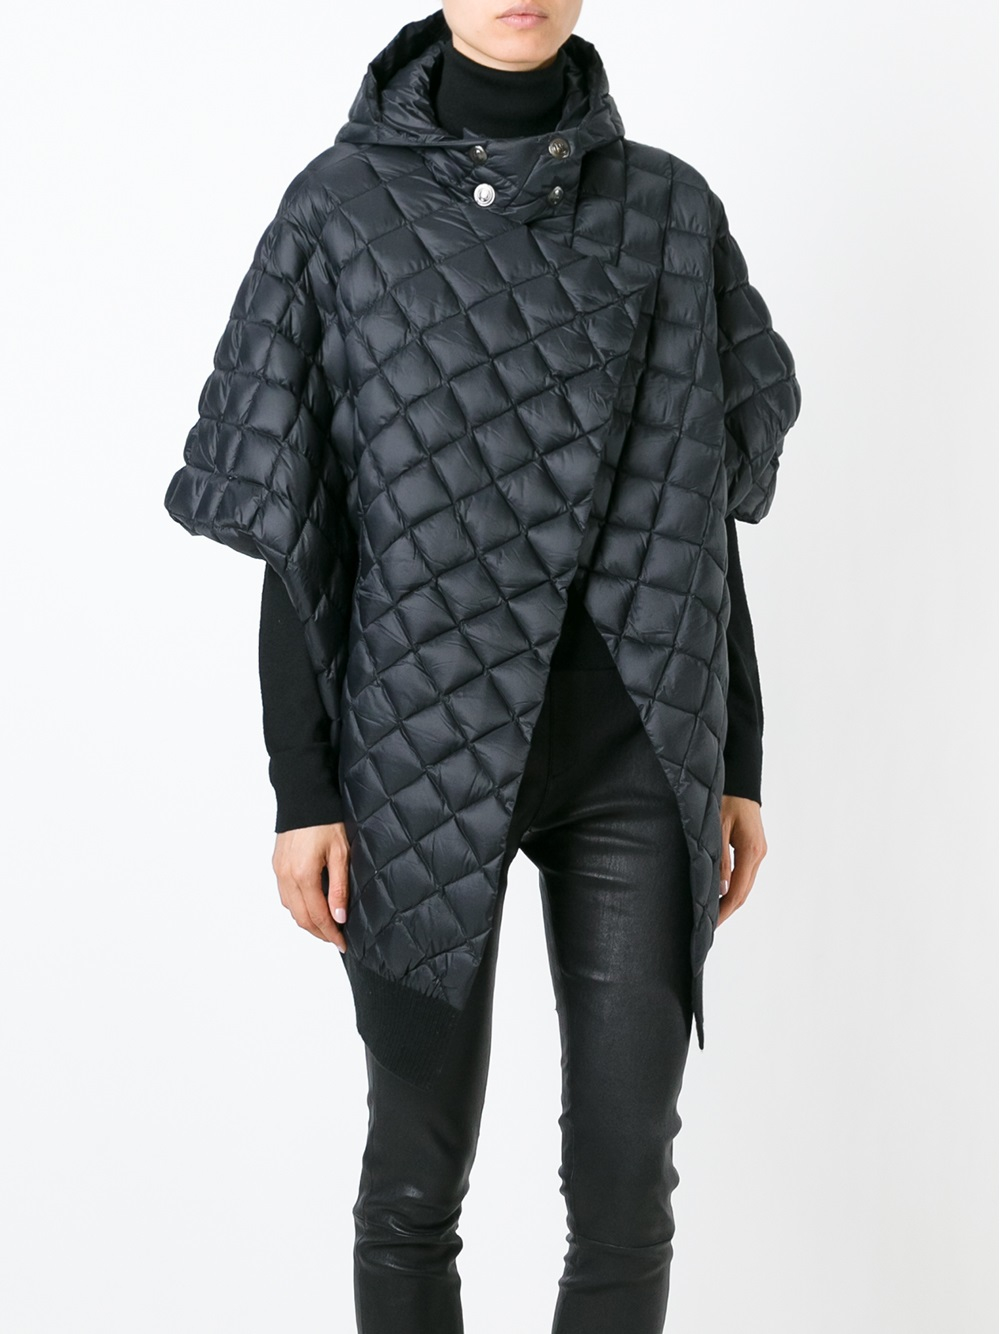 Balmain Quilted Padded Coat in Gray | Lyst : quilted padded coat - Adamdwight.com